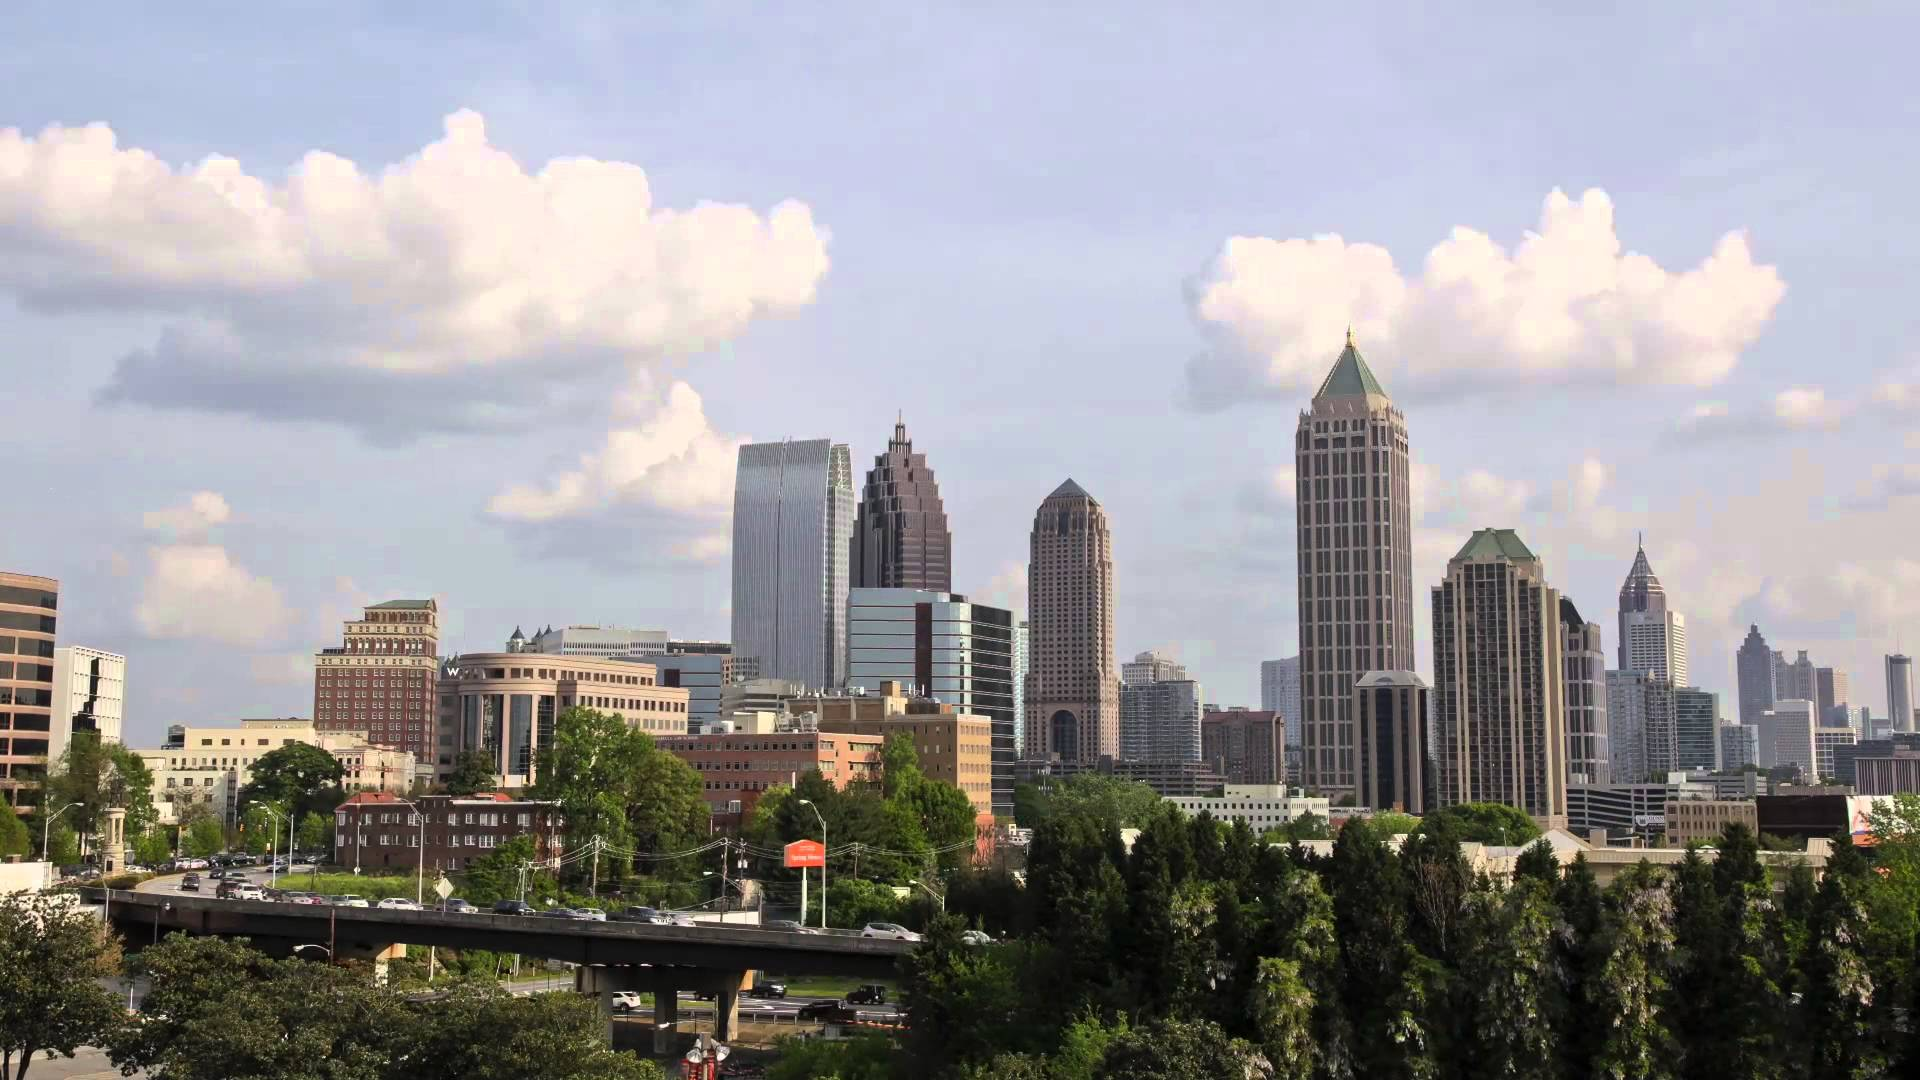 Midtown's skyline - for now.